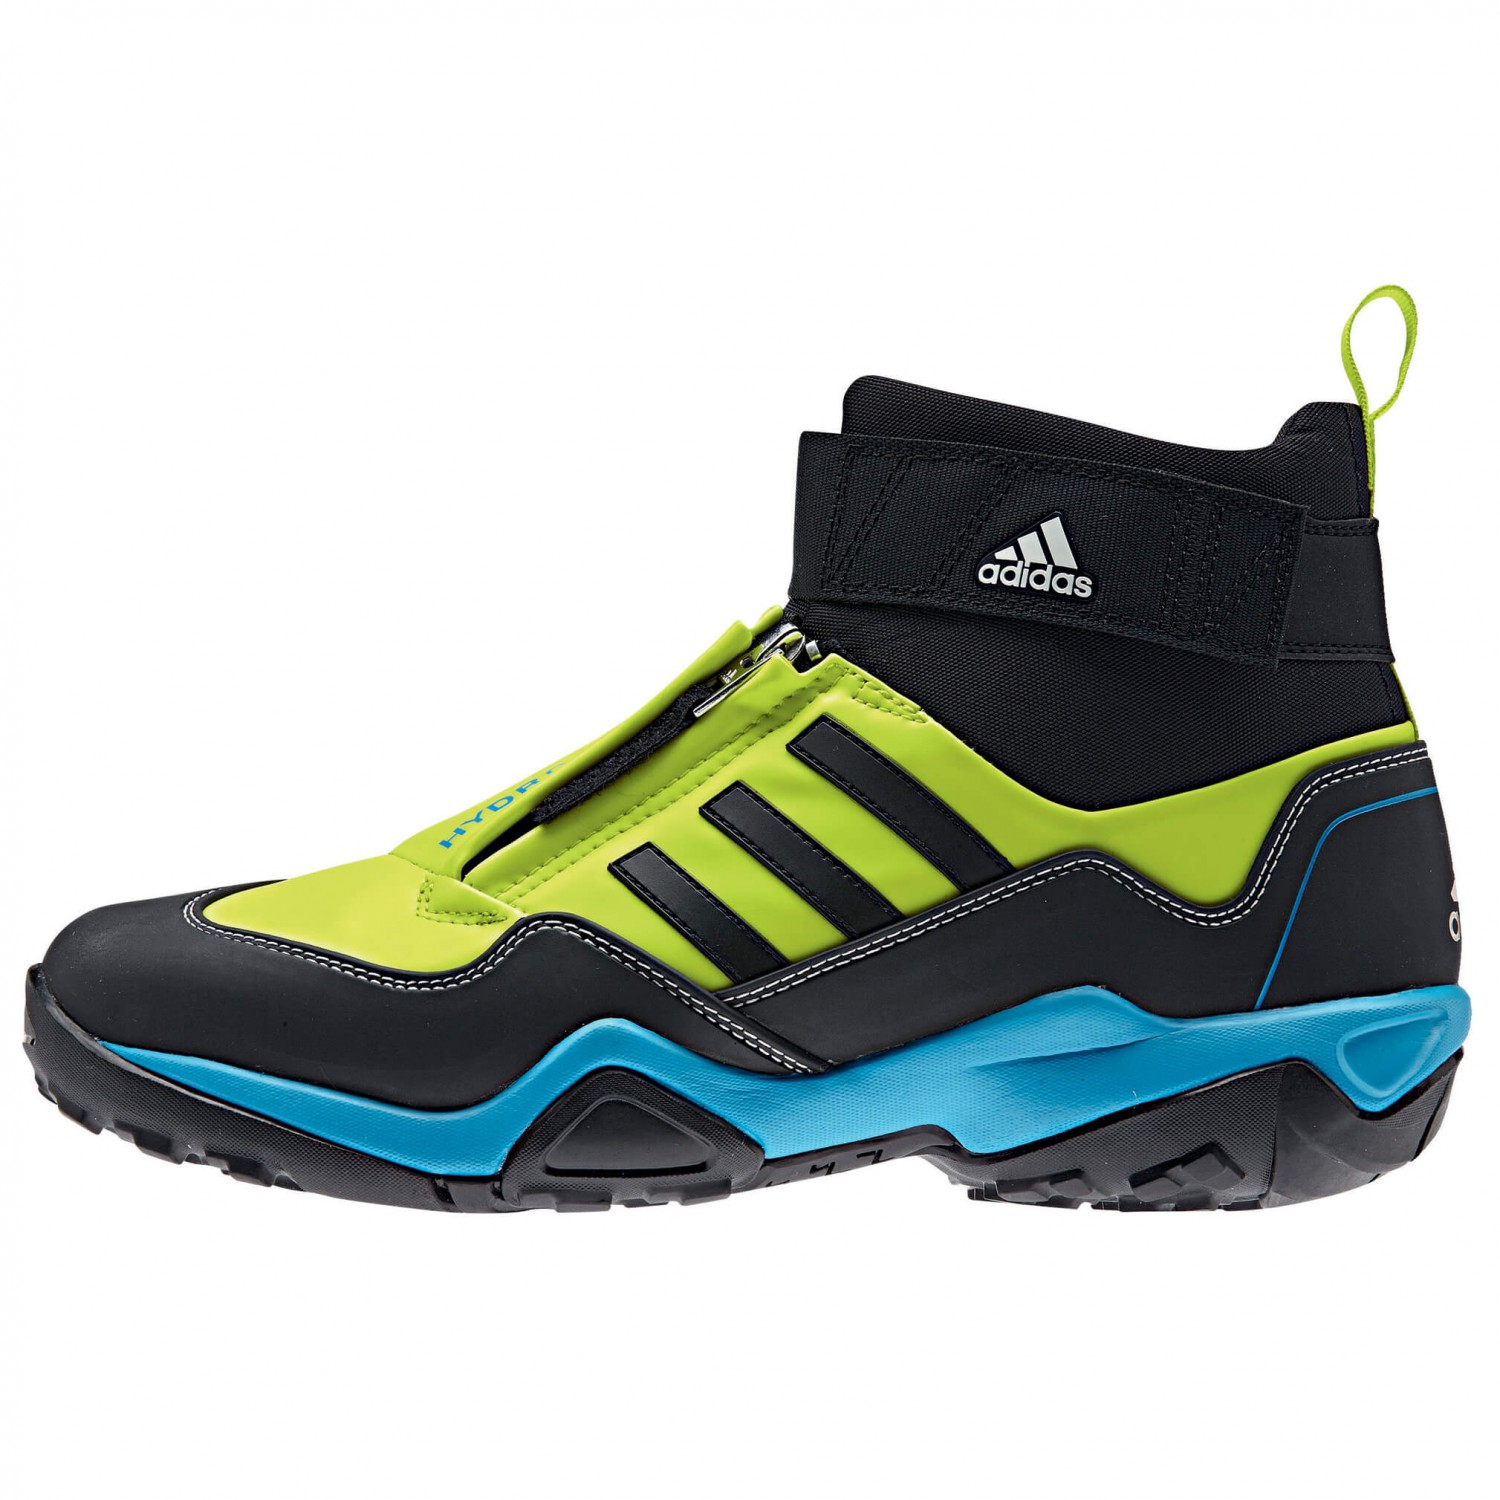 Adidas Water Proof Shoe